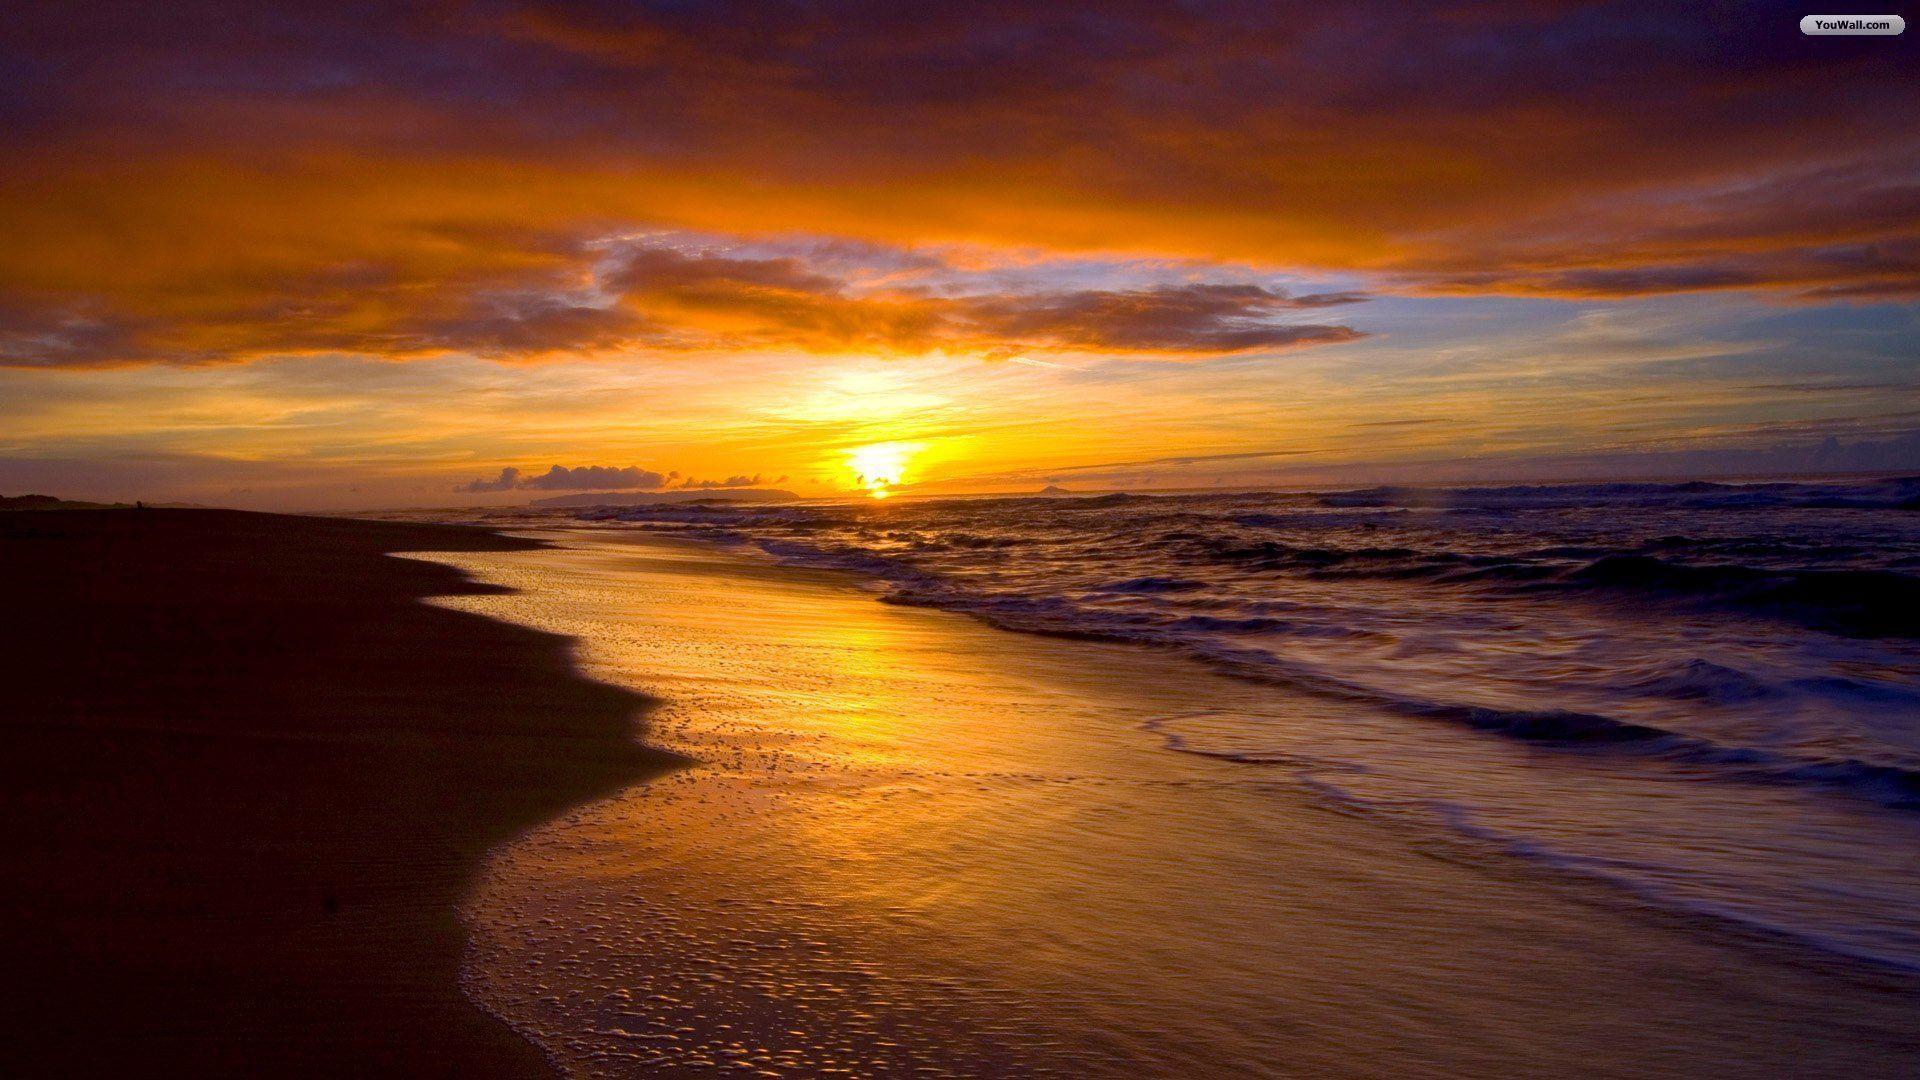 Beach Sunset Desktop Wallpapers Top